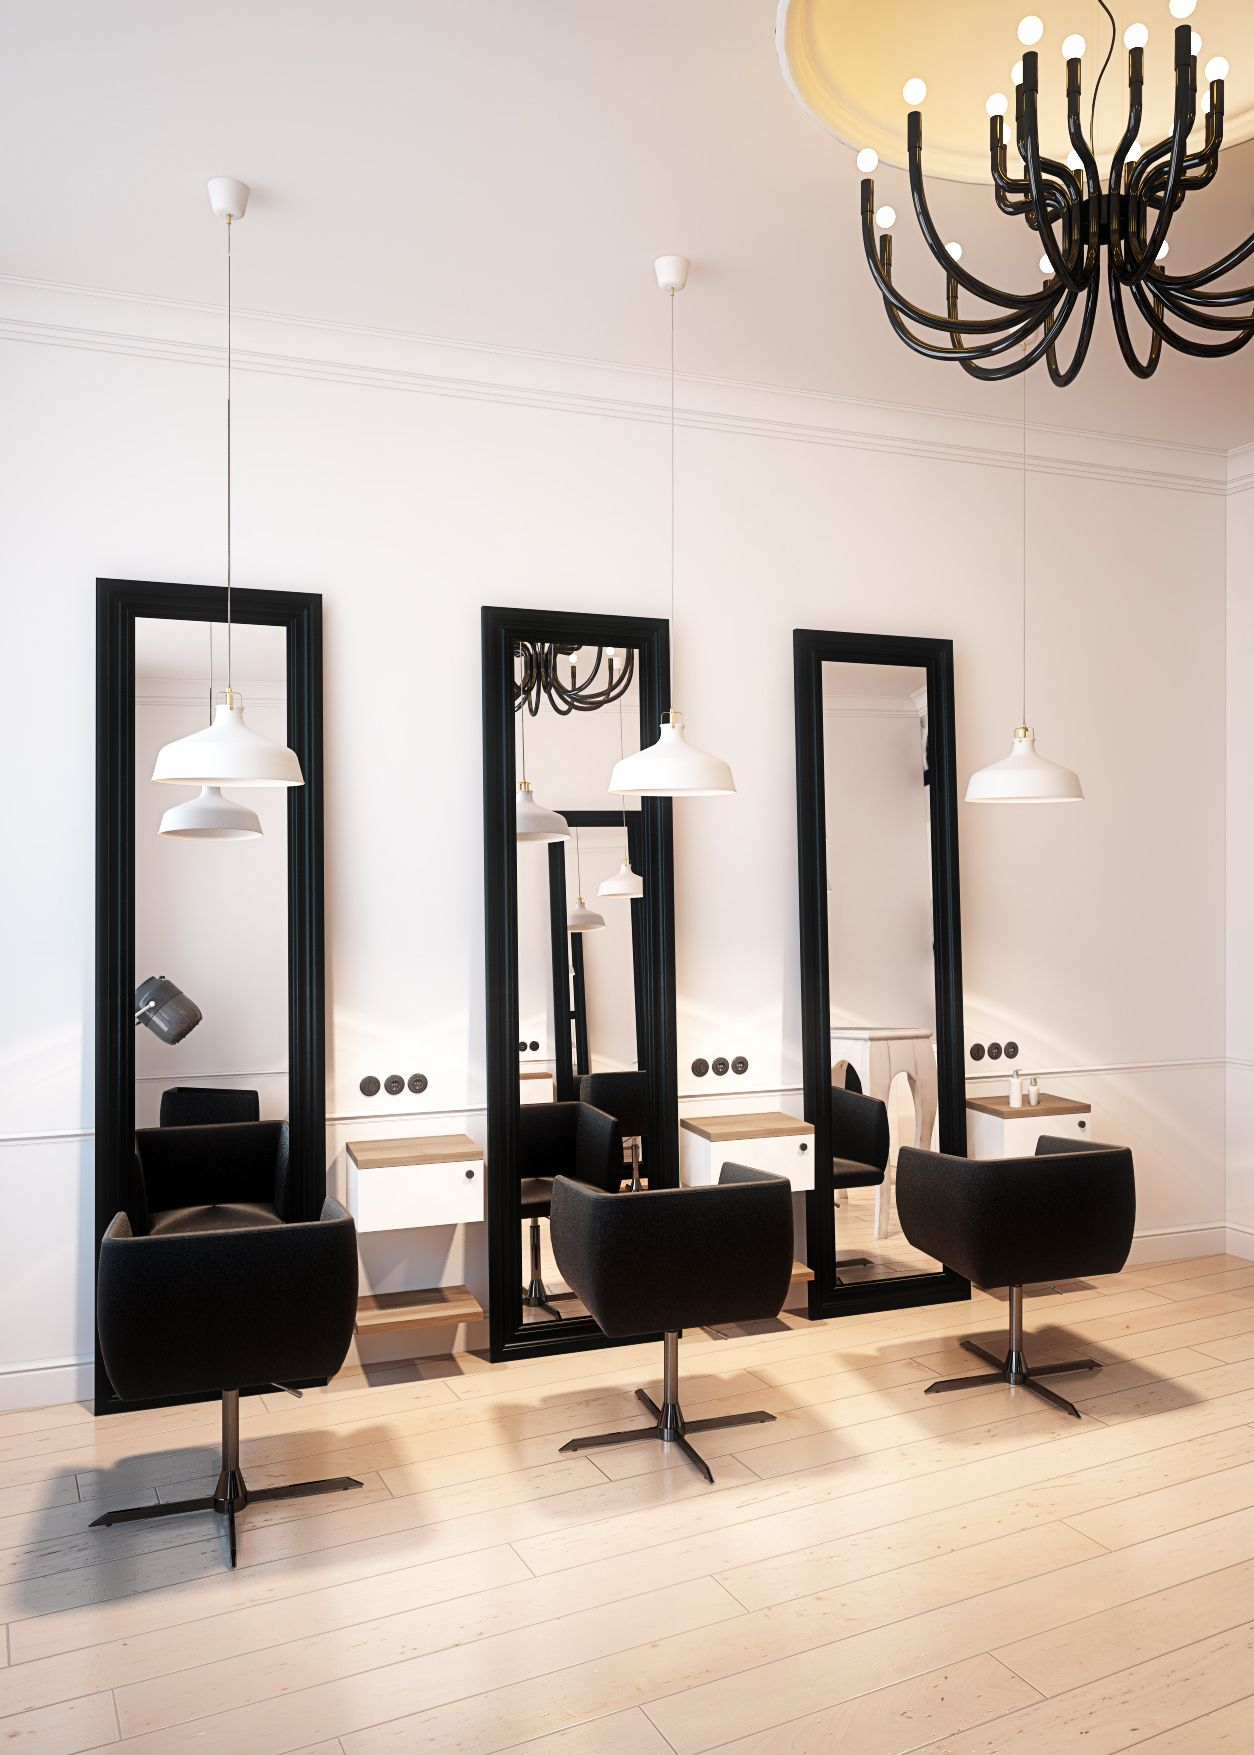 hairdresser interior design in bytom poland archi group salon fryzjerski w bytomiu. Black Bedroom Furniture Sets. Home Design Ideas